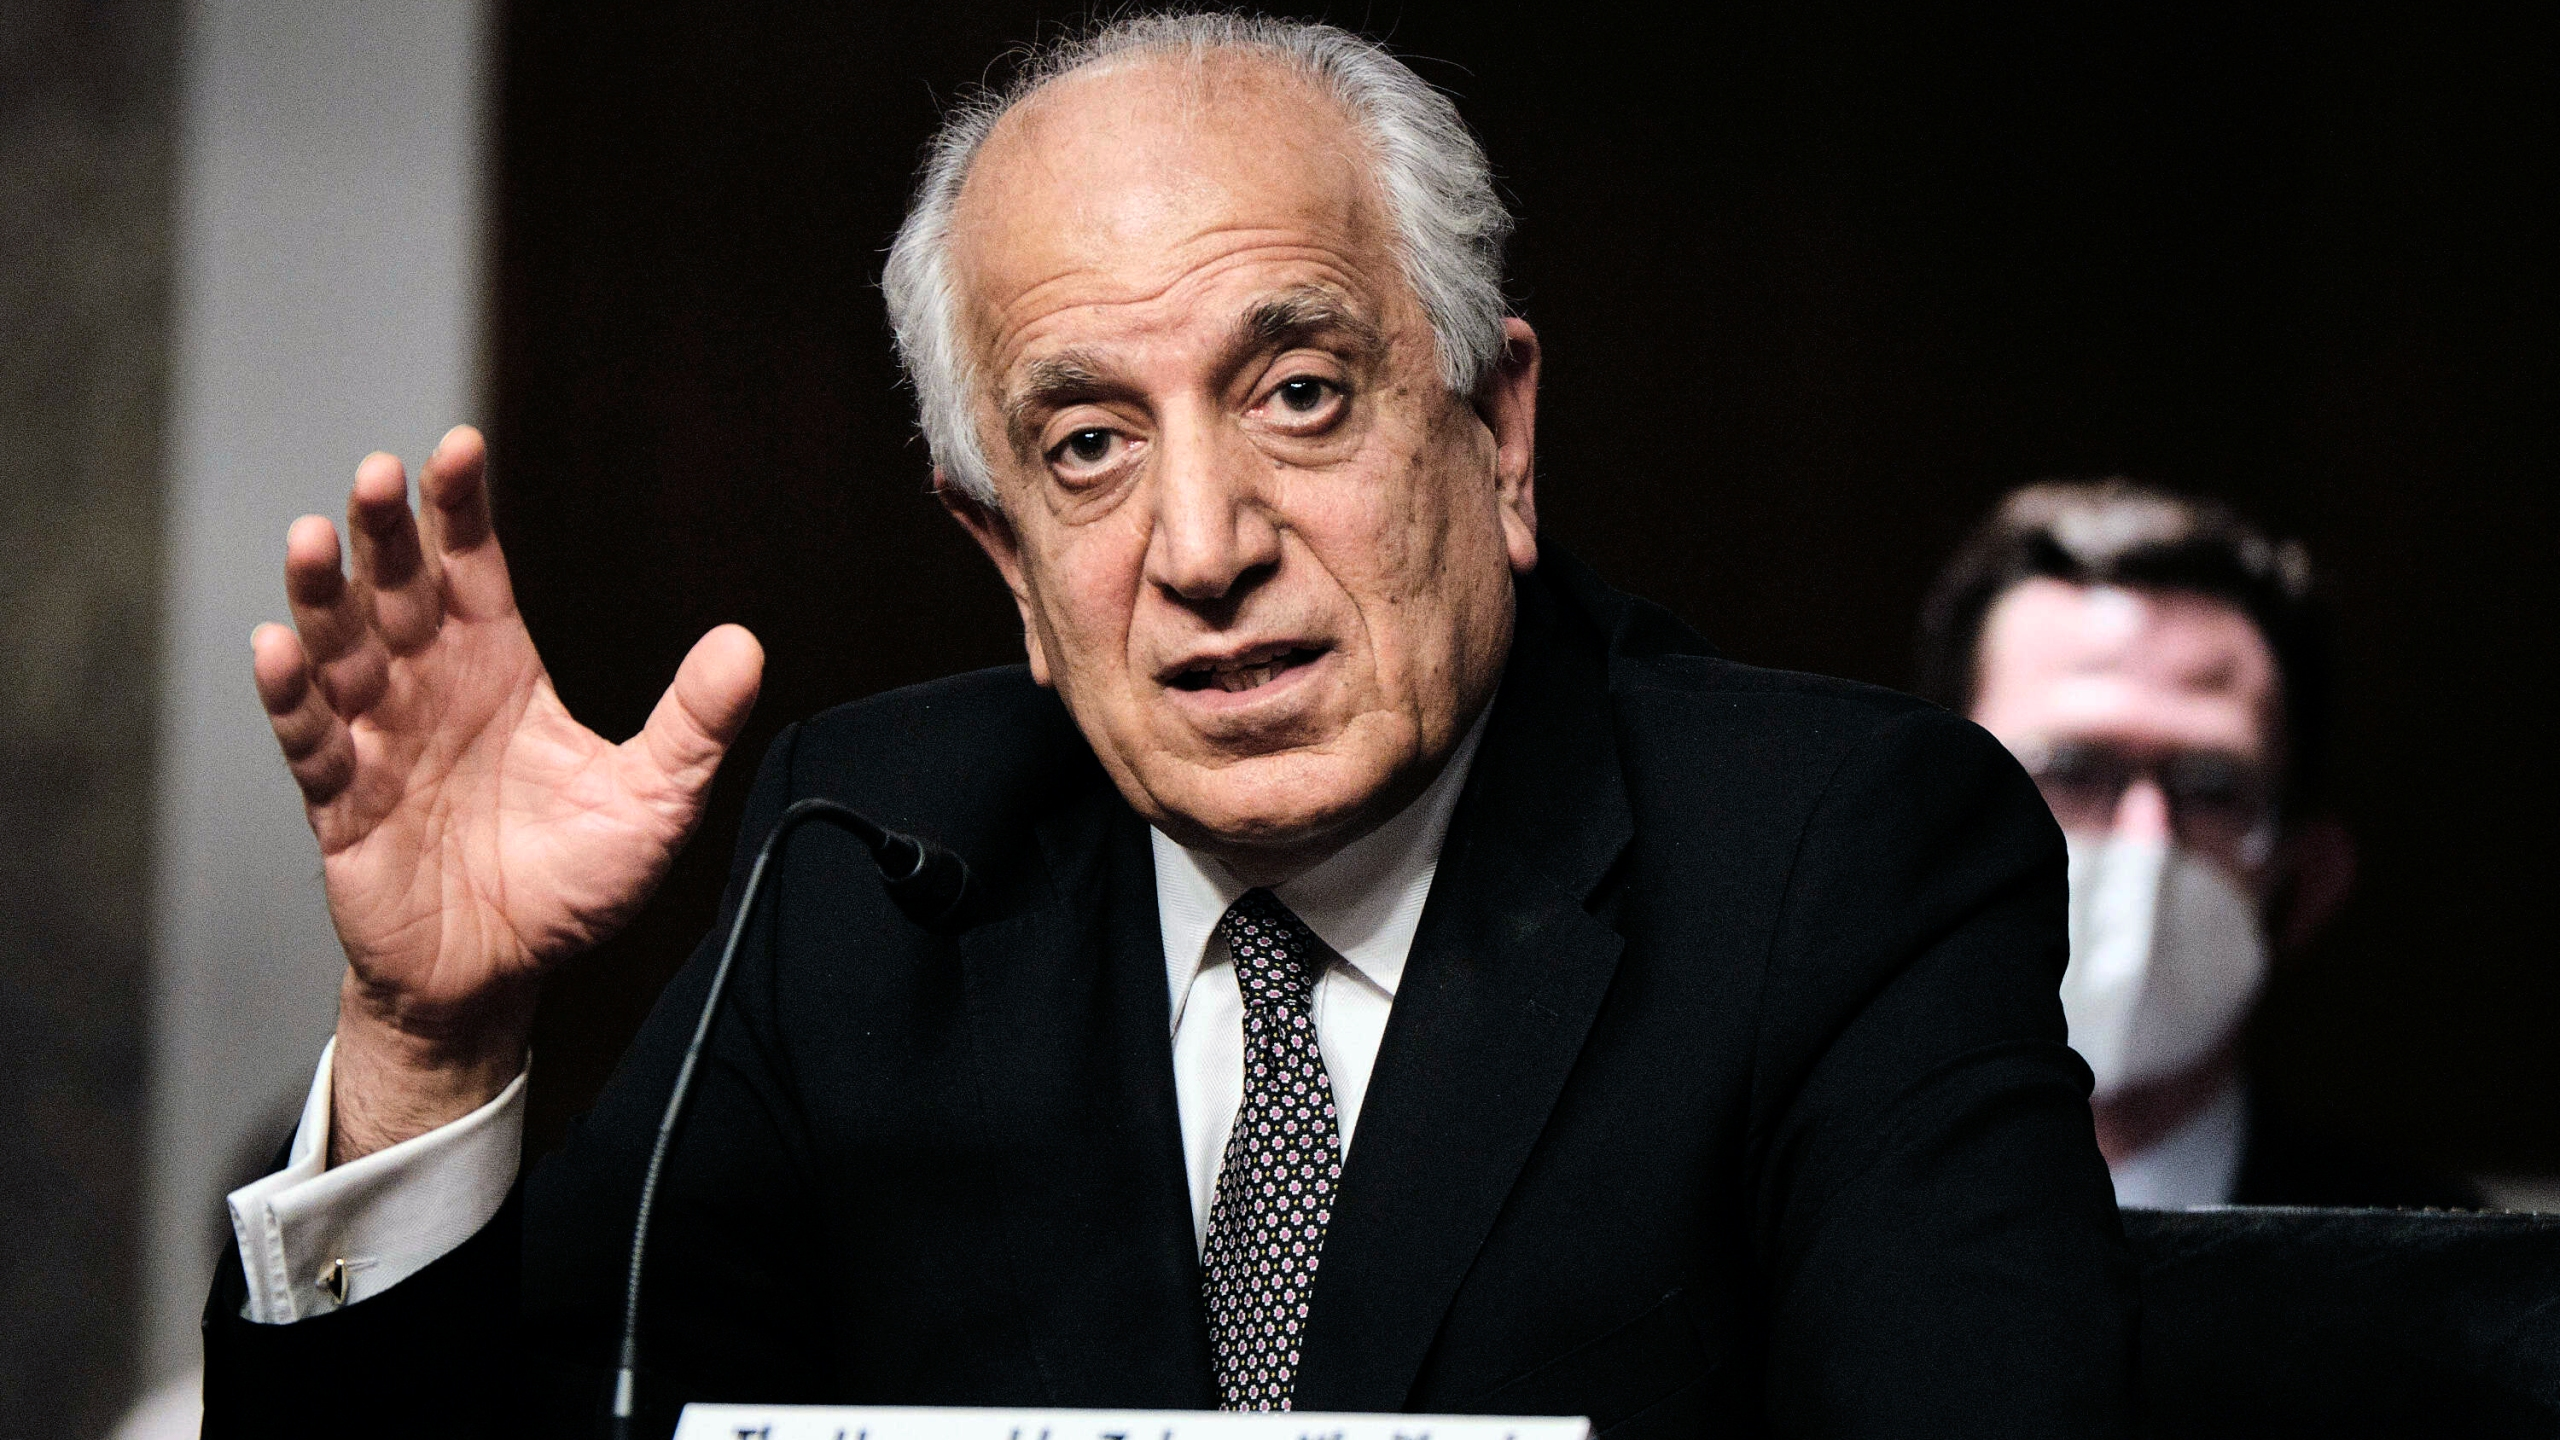 Zalmay Khalilzad, special envoy for Afghanistan Reconciliation, testifies before the Senate Foreign Relations Committee on Capitol Hill in Washington on April 27, 2021, during a hearing on the Biden administration's Afghanistan policy and plans to withdraw troops after two decades of war. (T.J. Kirkpatrick/The New York Times via AP, Pool)